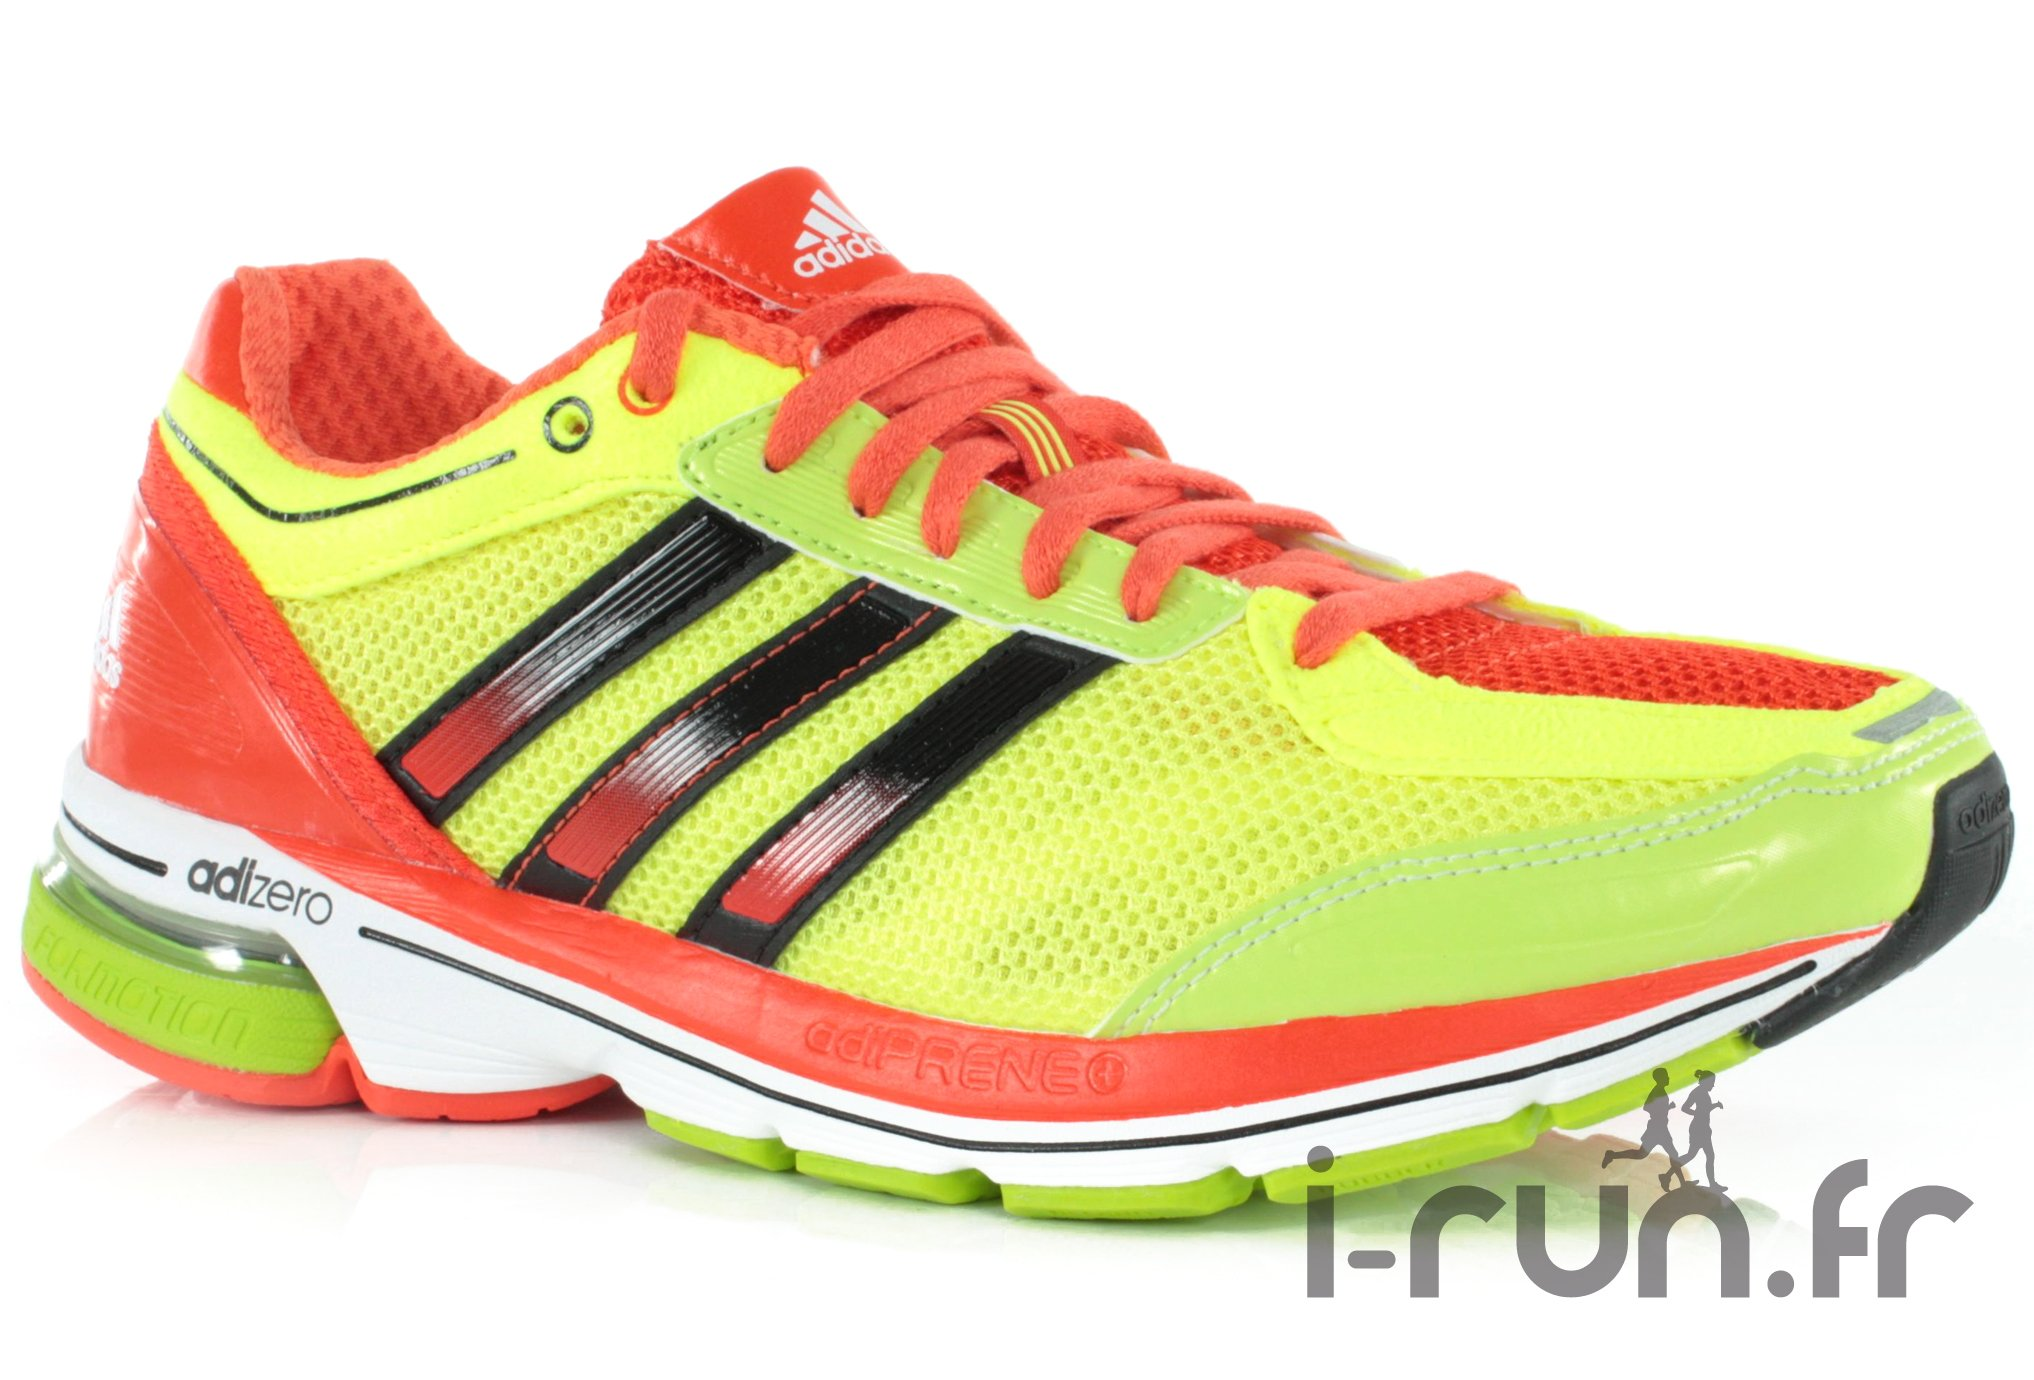 3 Boston Adidas Adizero Running Homme Chaussures soldes xZqFIvnXw